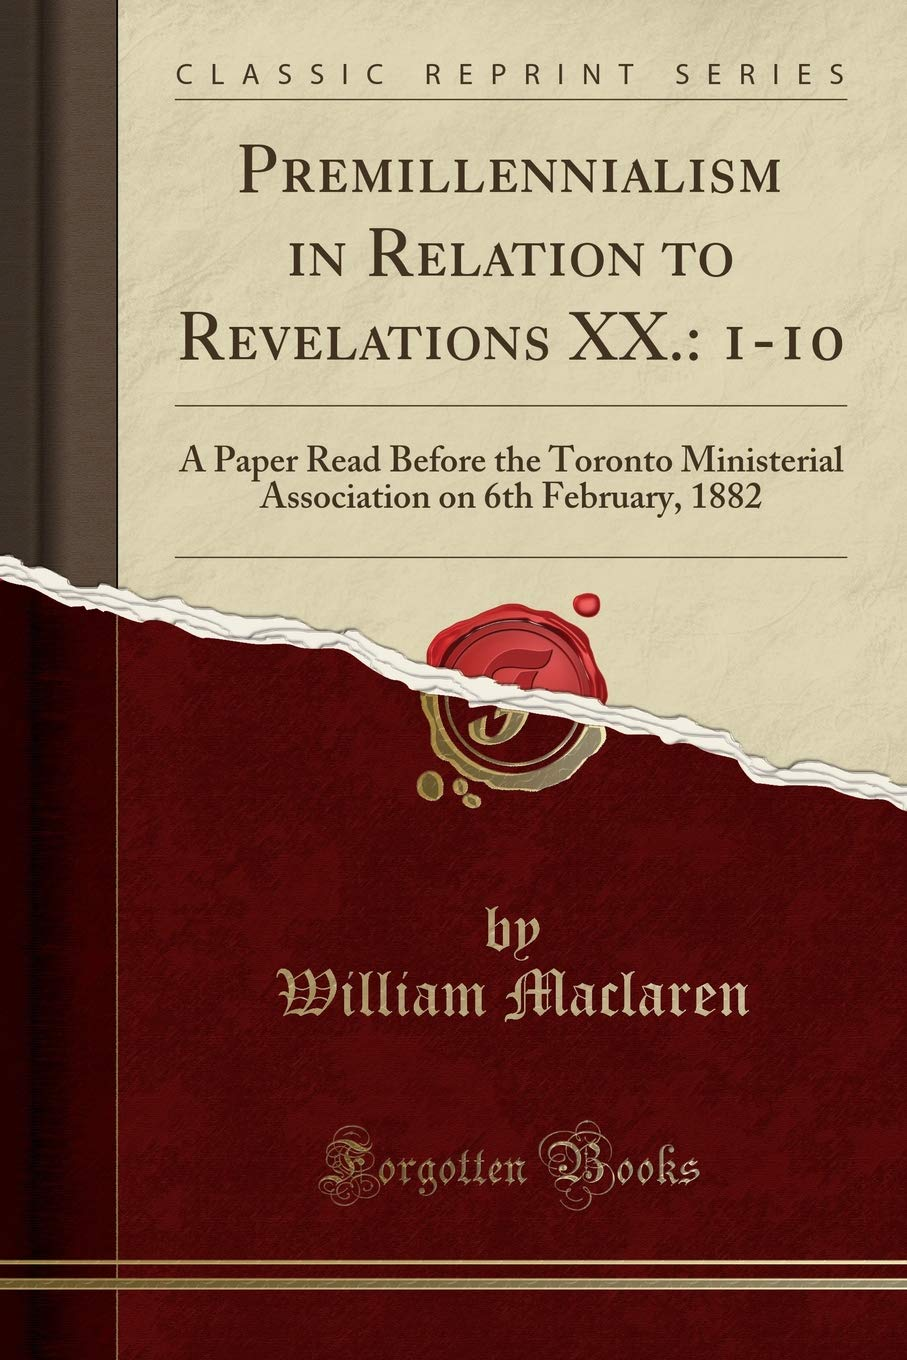 Read Online Premillennialism in Relation to Revelations XX.: 1-10: A Paper Read Before the Toronto Ministerial Association on 6th February, 1882 (Classic Reprint) ebook